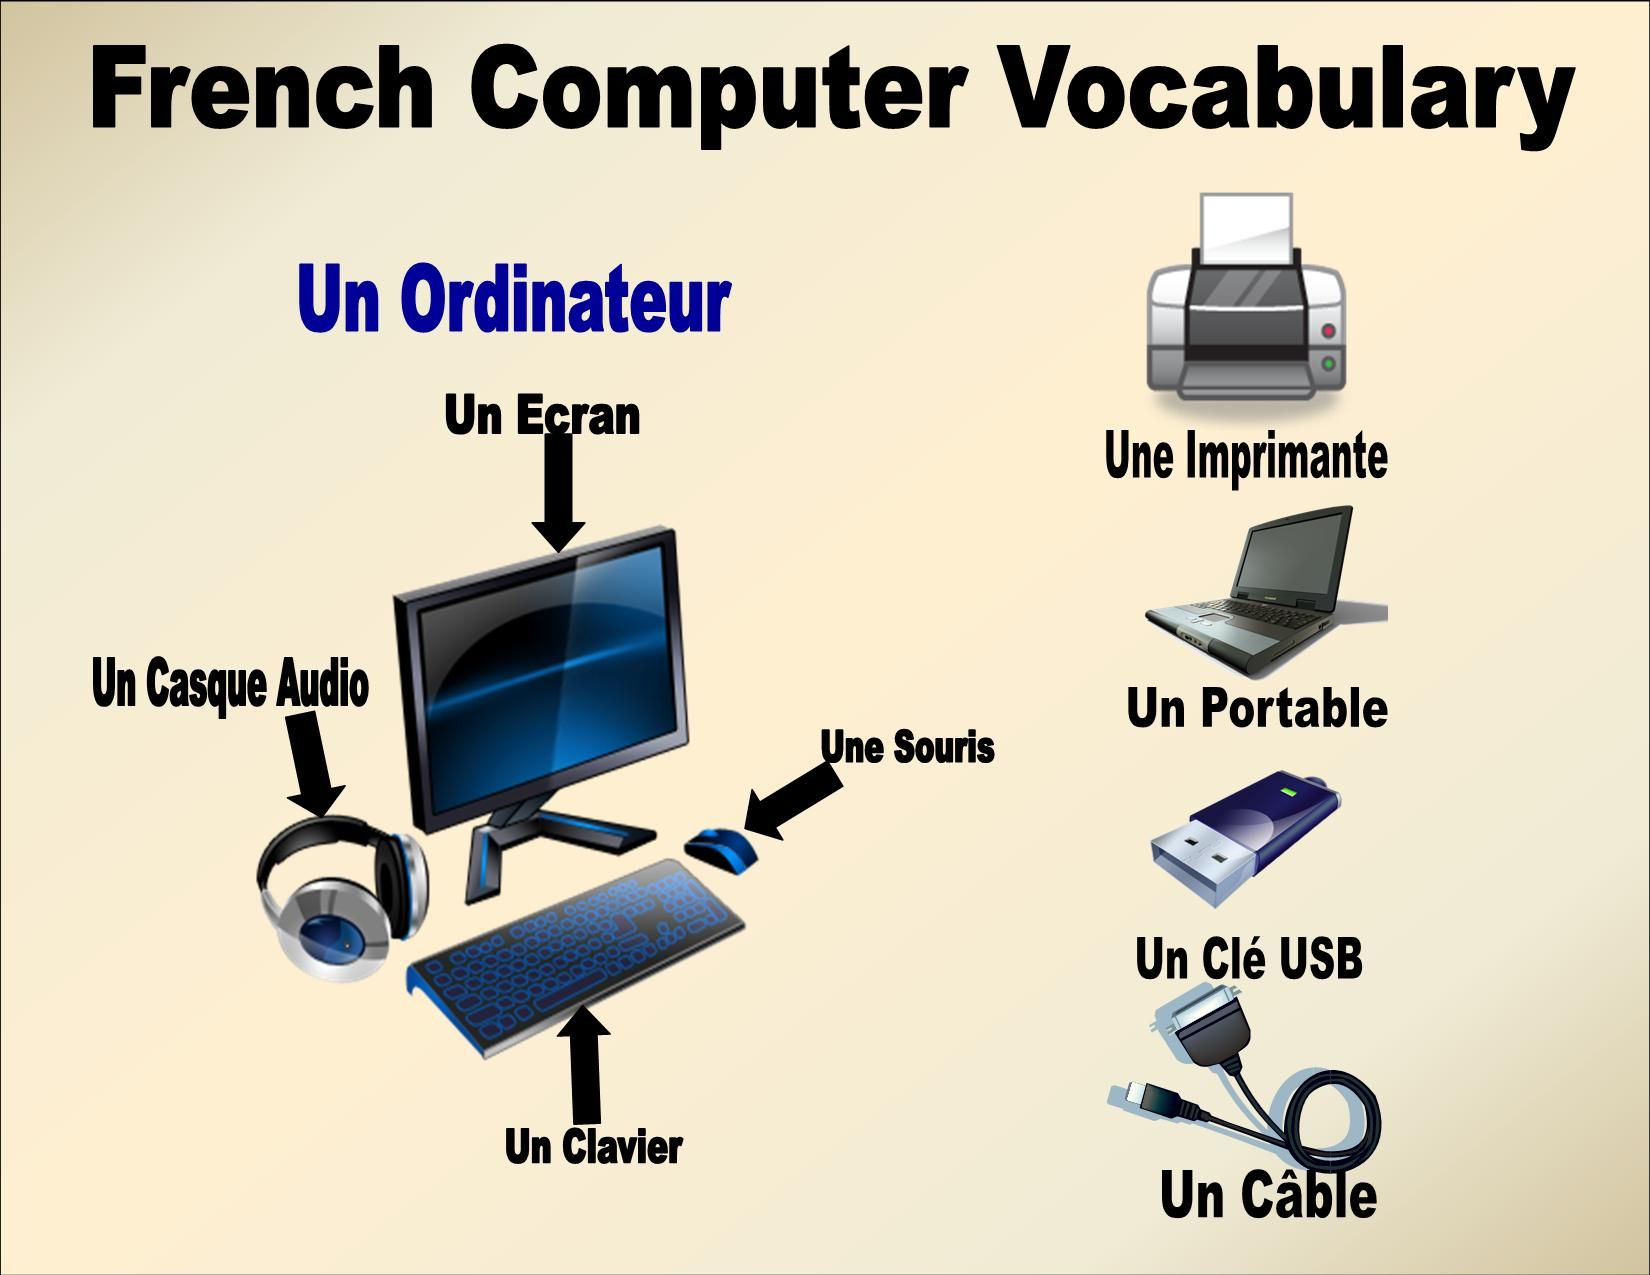 Make Sure You Know Your French Computer Vocabulary Words